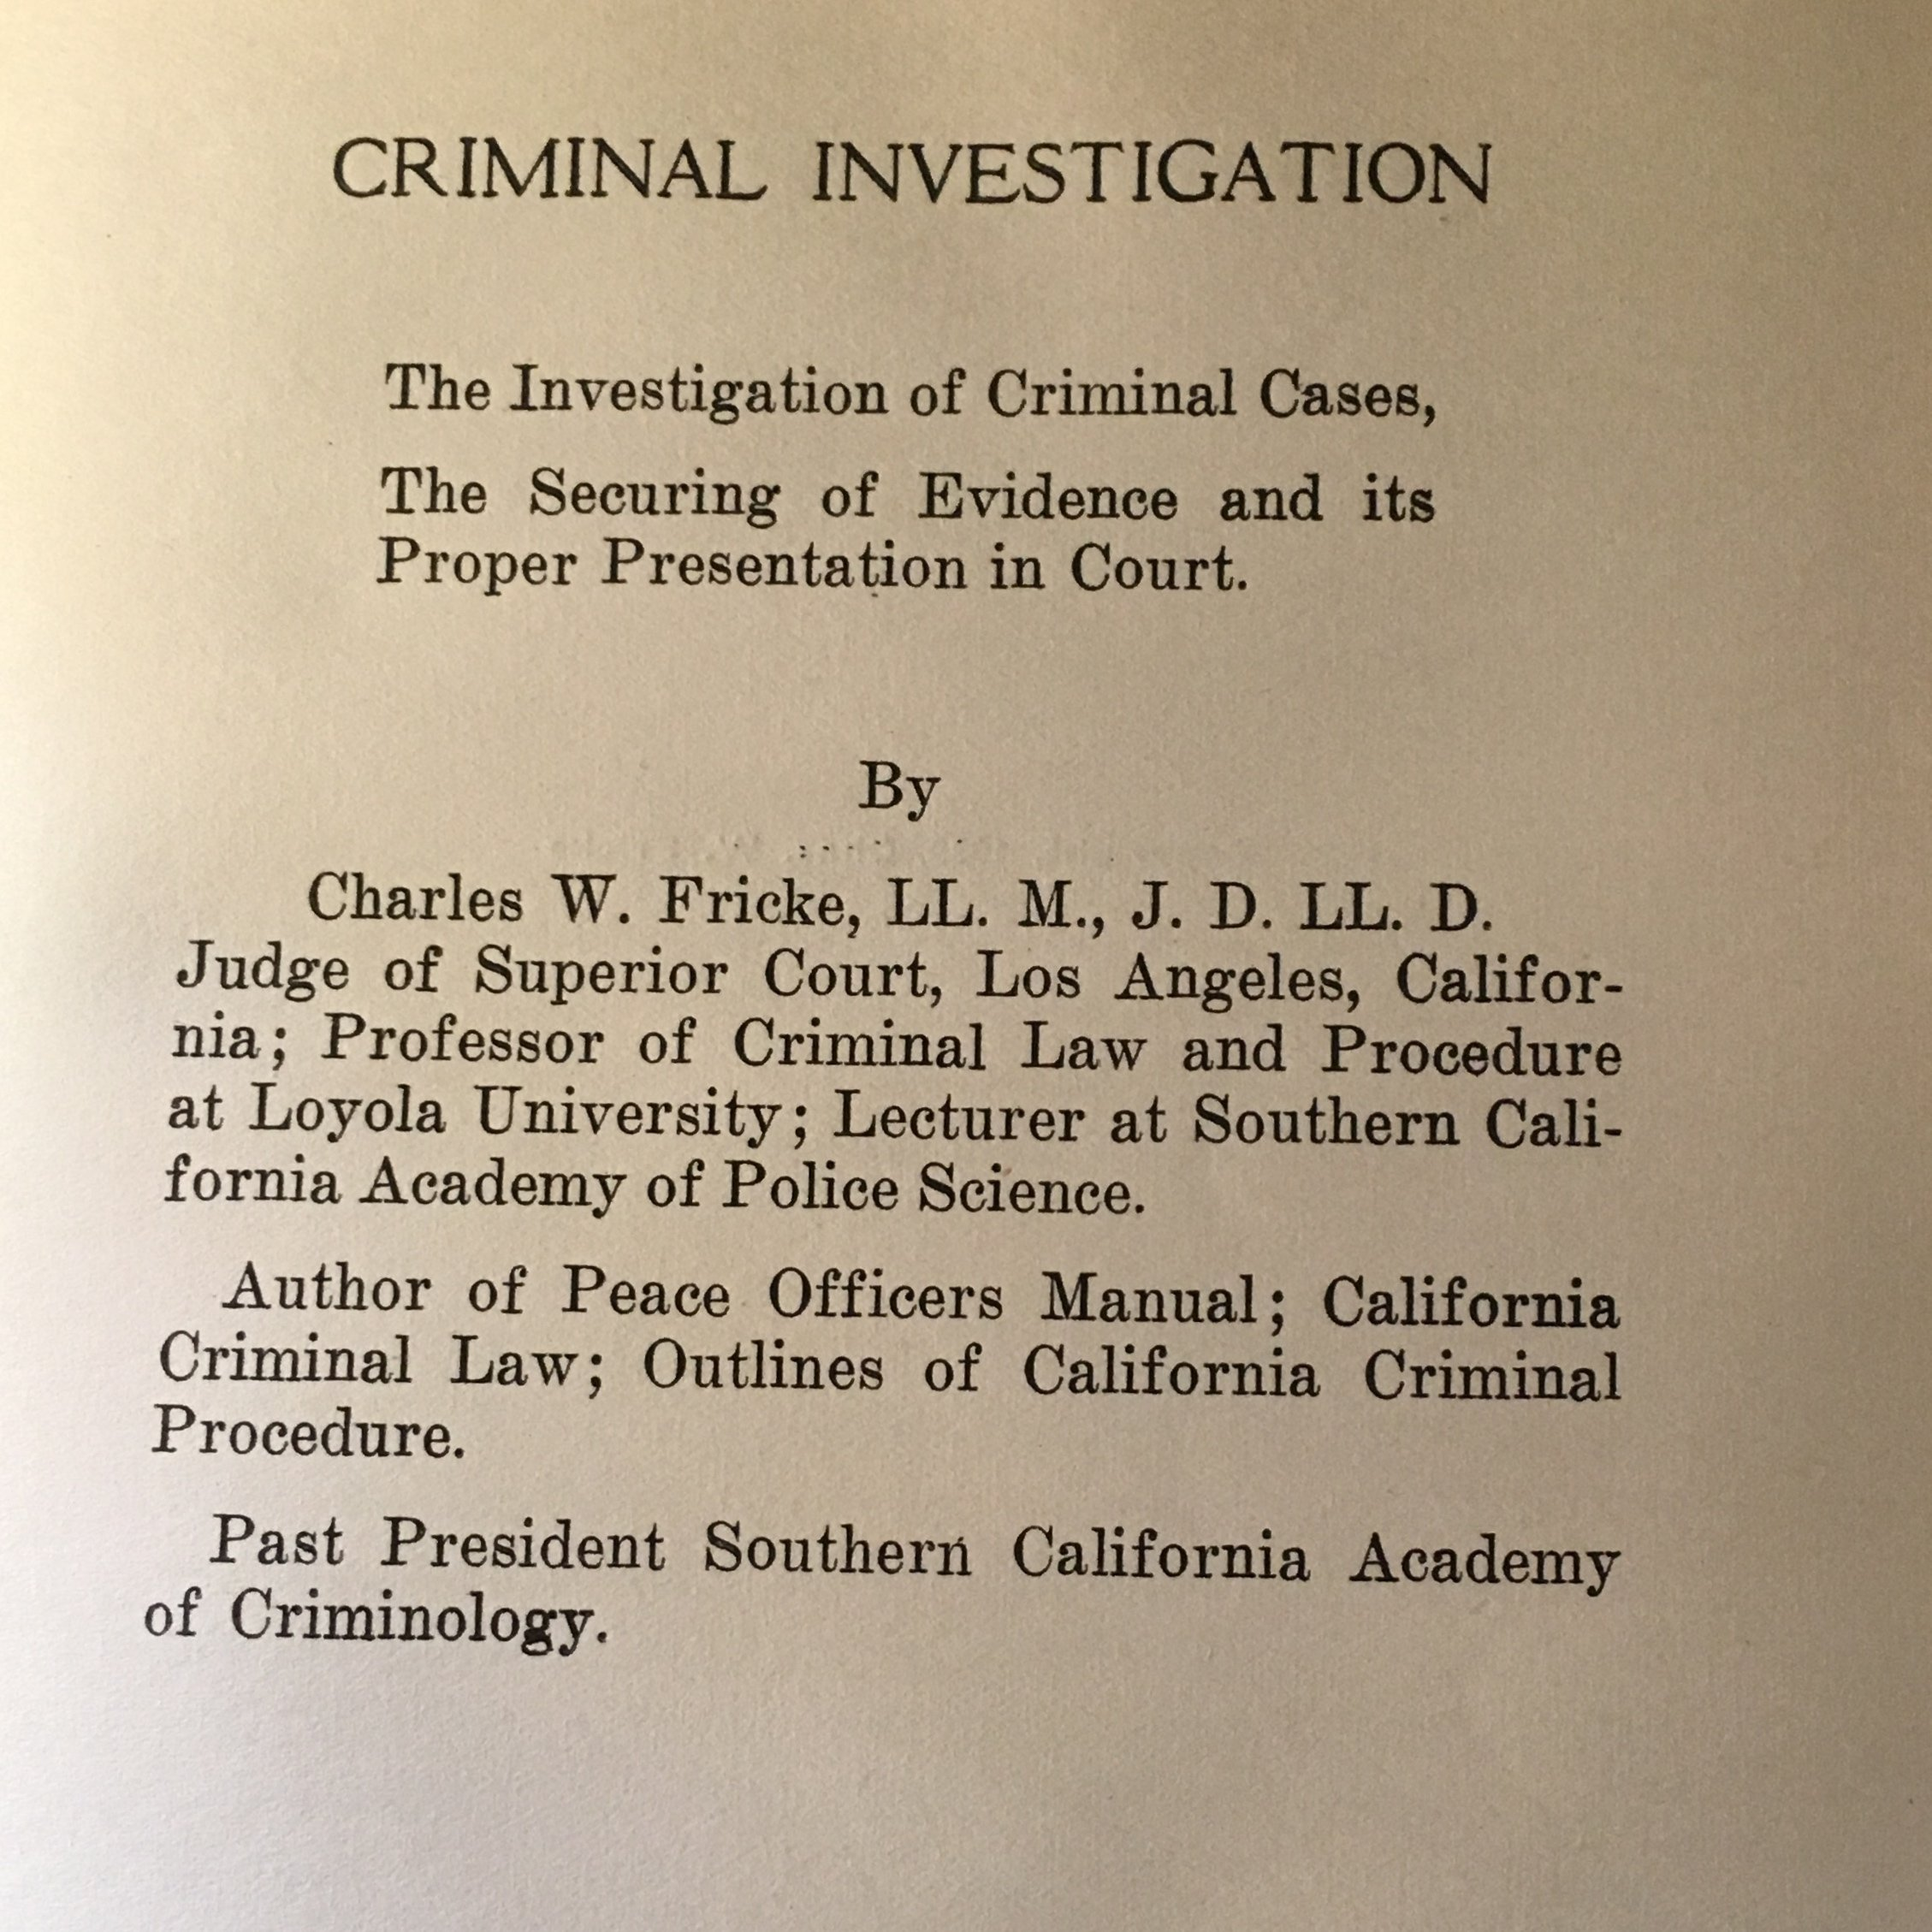 Criminal Investigation by Chas. W. Fricke  1930 (Hardcover)